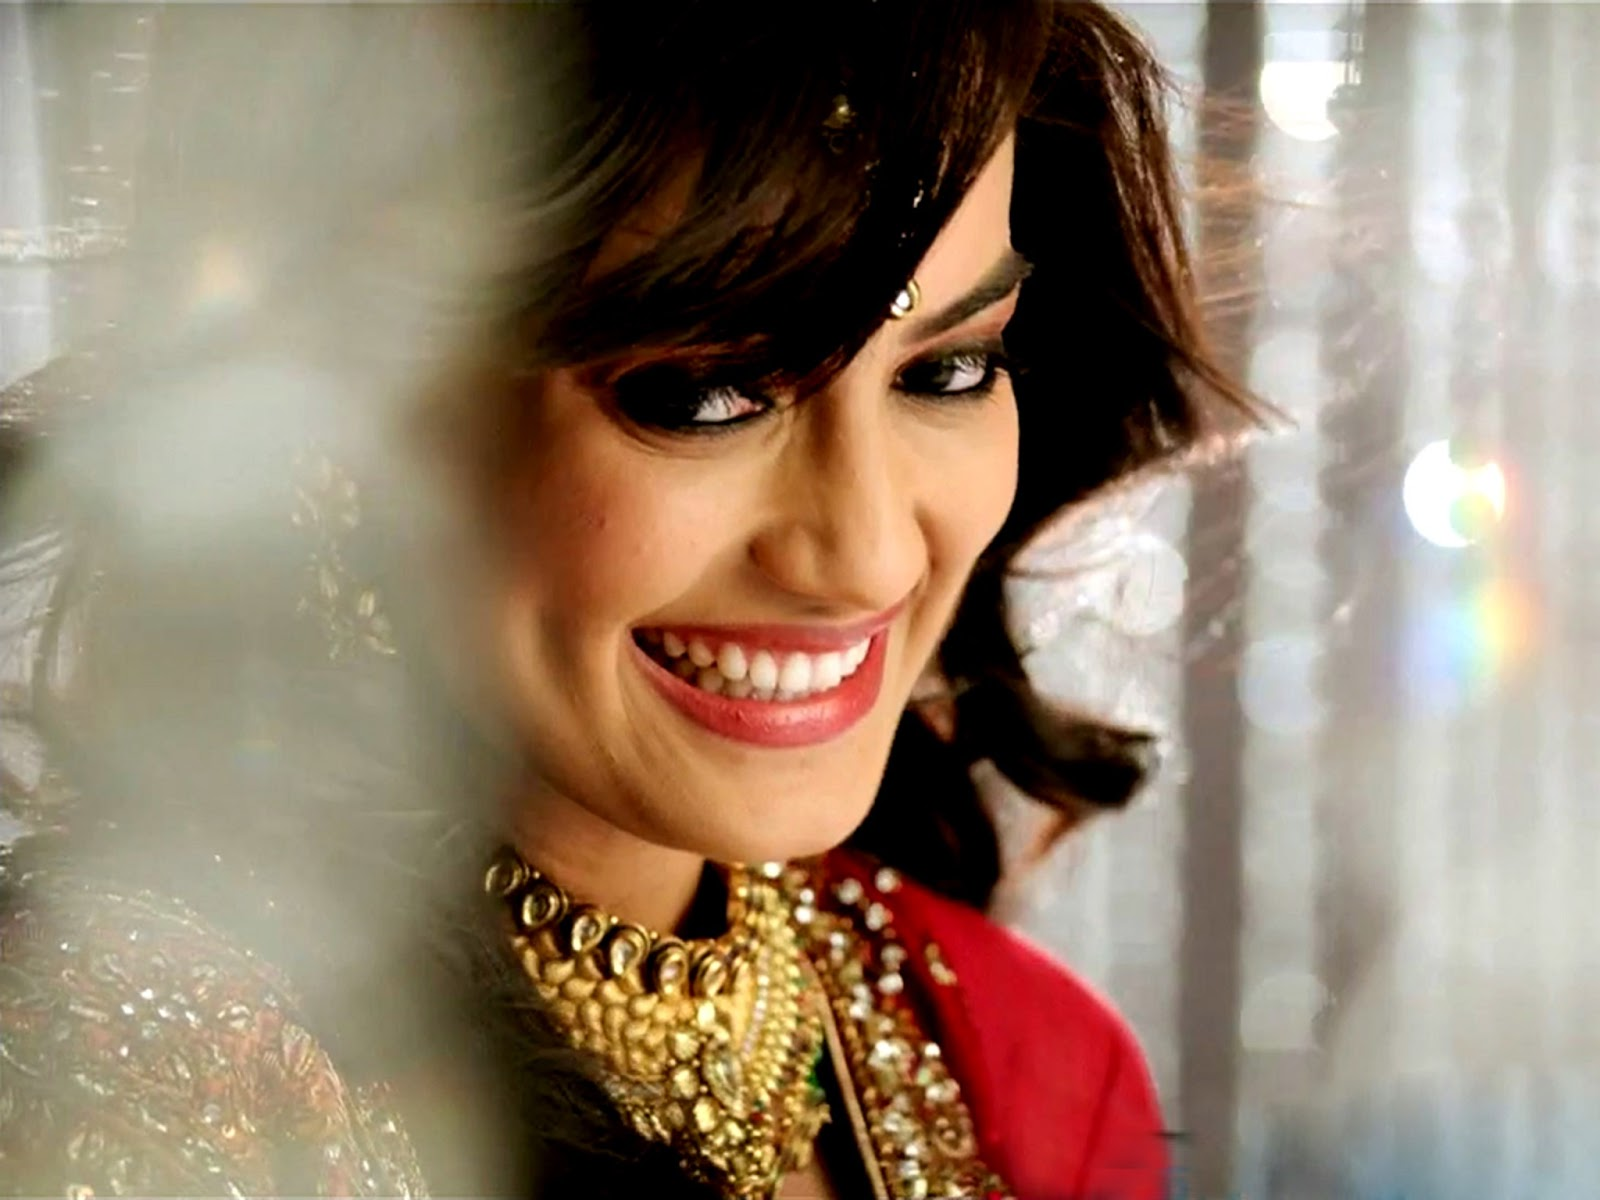 I Love Jyoti Wallpaper : Surbhi Jyoti HD Wallpaper - all 4u wallpaper